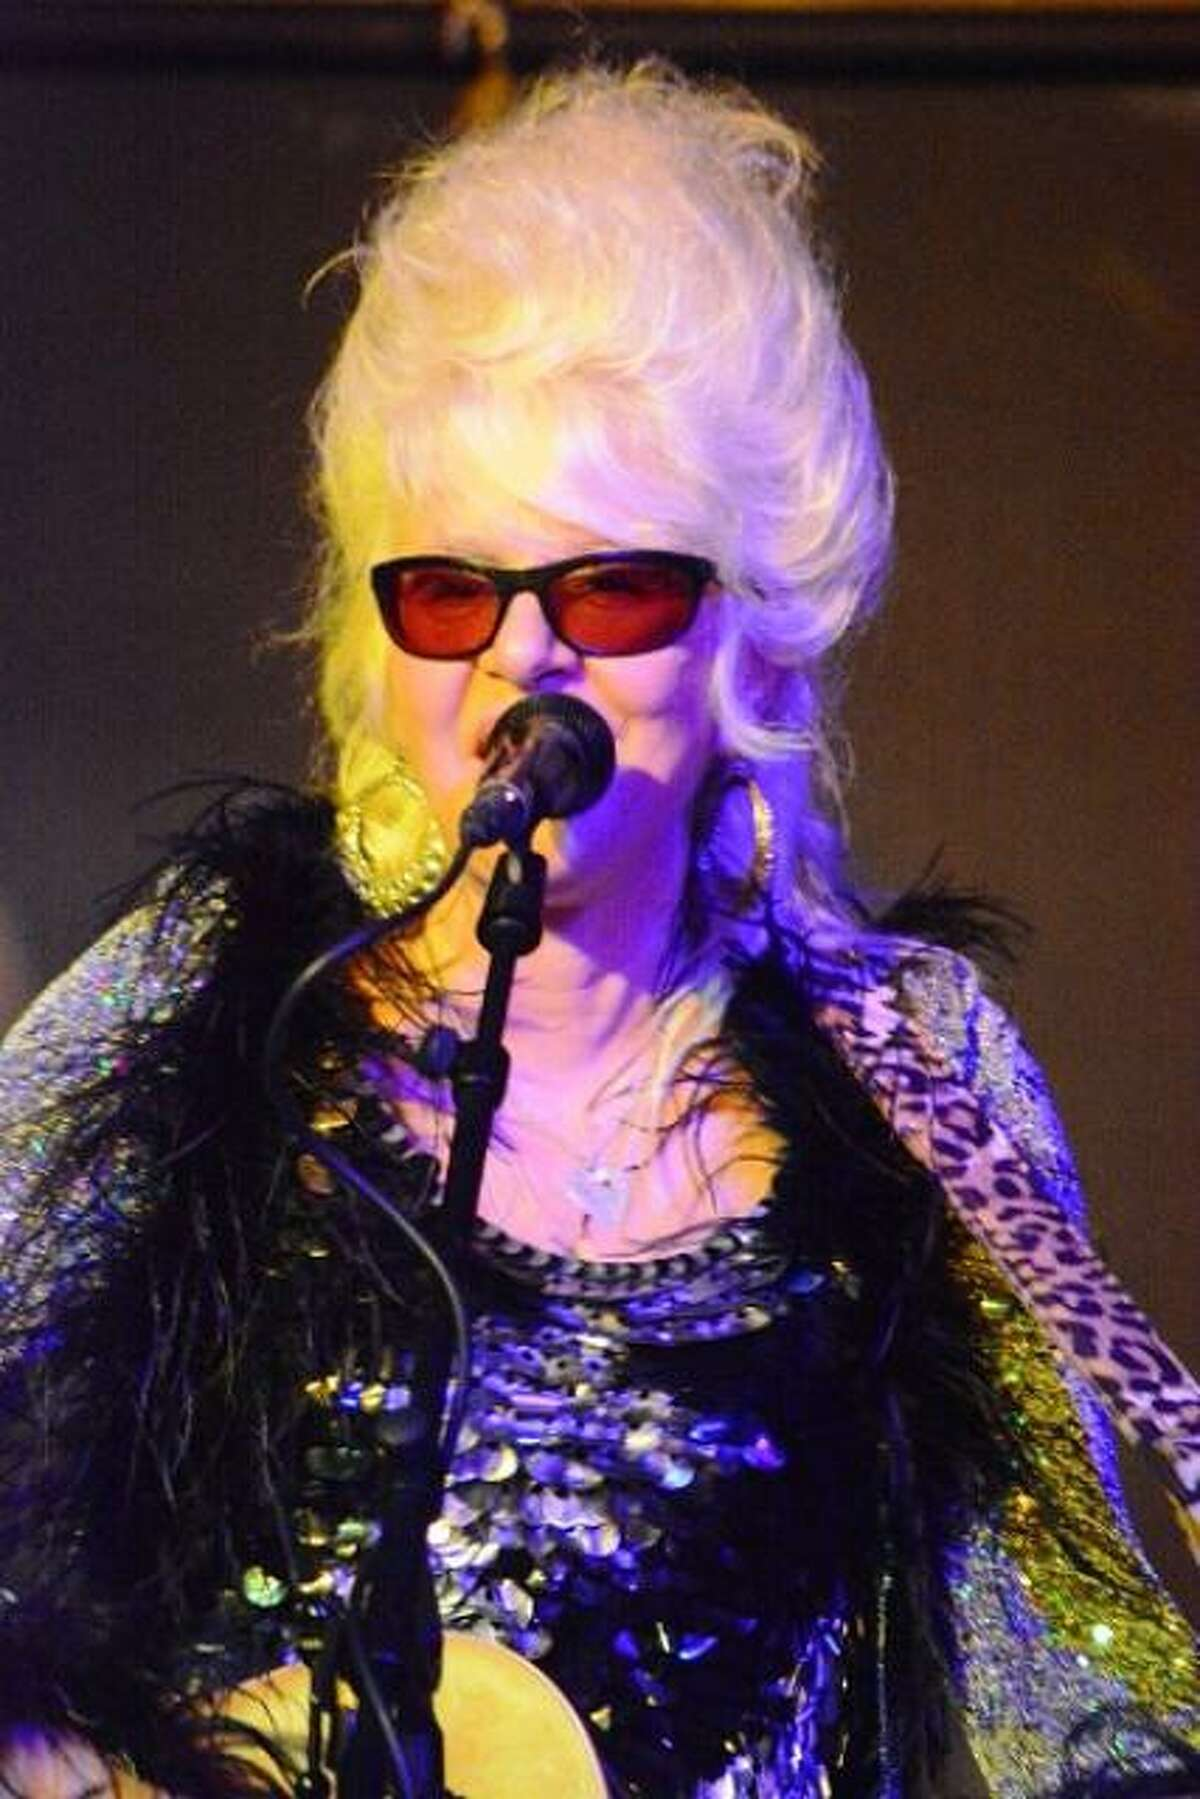 Join Christine Ohlman & Rebel Montez as they continue the hip-shakin' Summer of 2021 tour Thursday at The CHIRP Concert Series